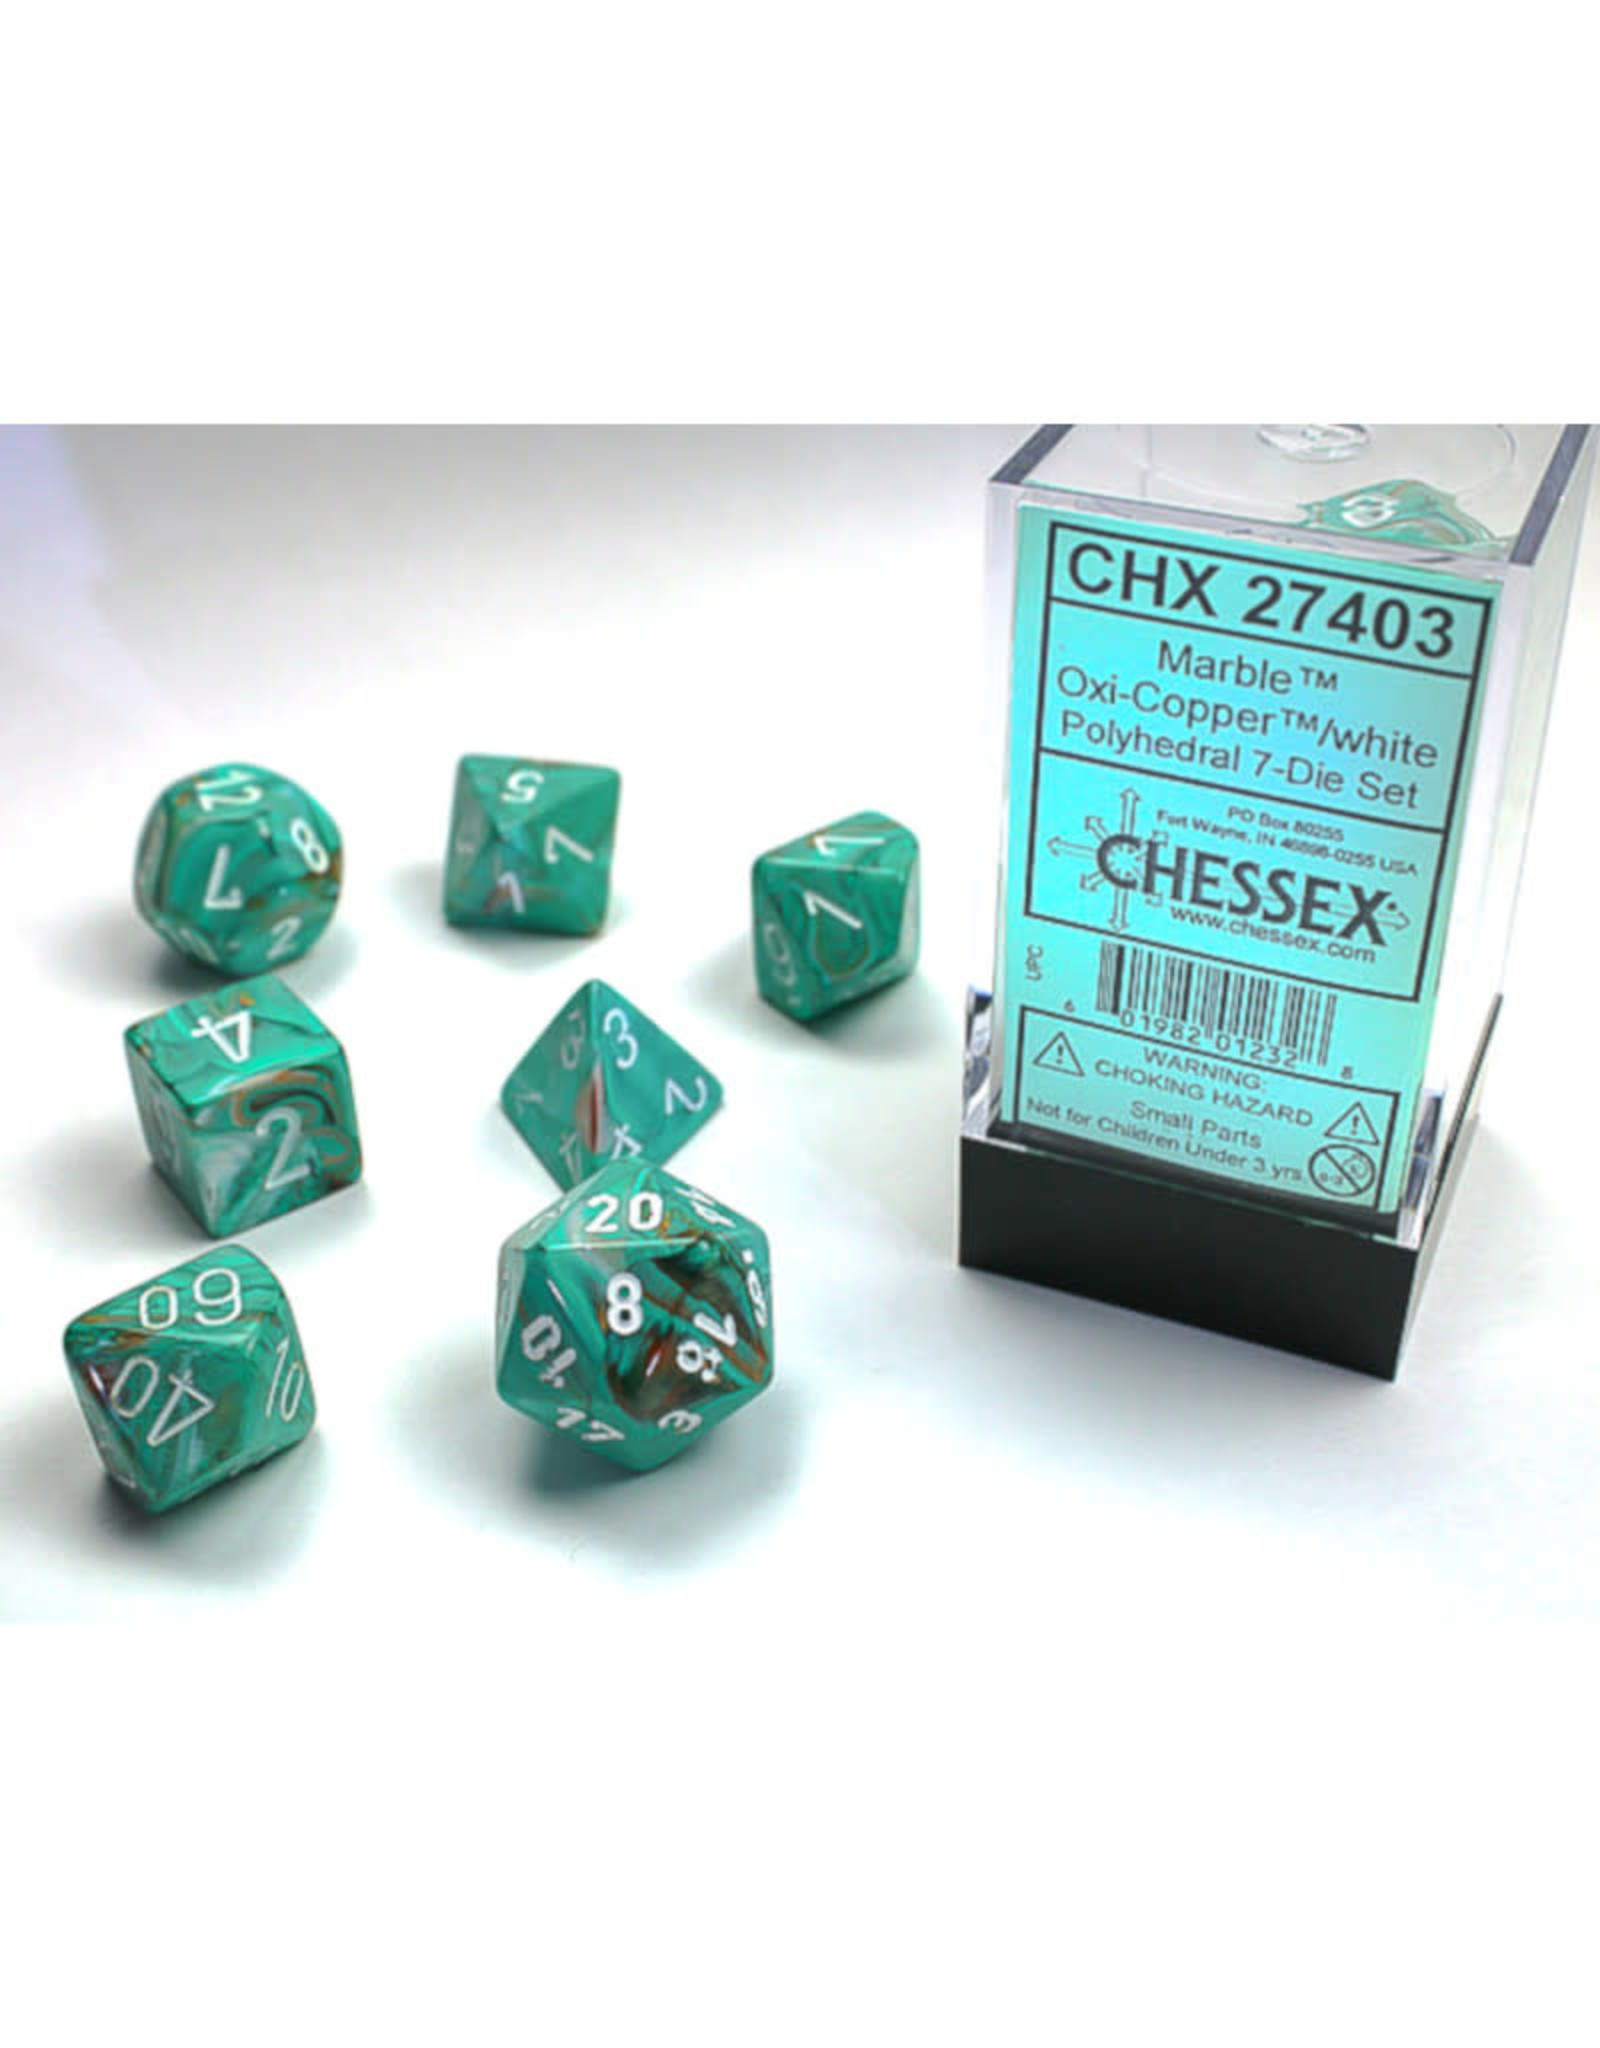 Chessex Polyhedral Dice Set: Menagerie Marble Oxi Copper/White (7)